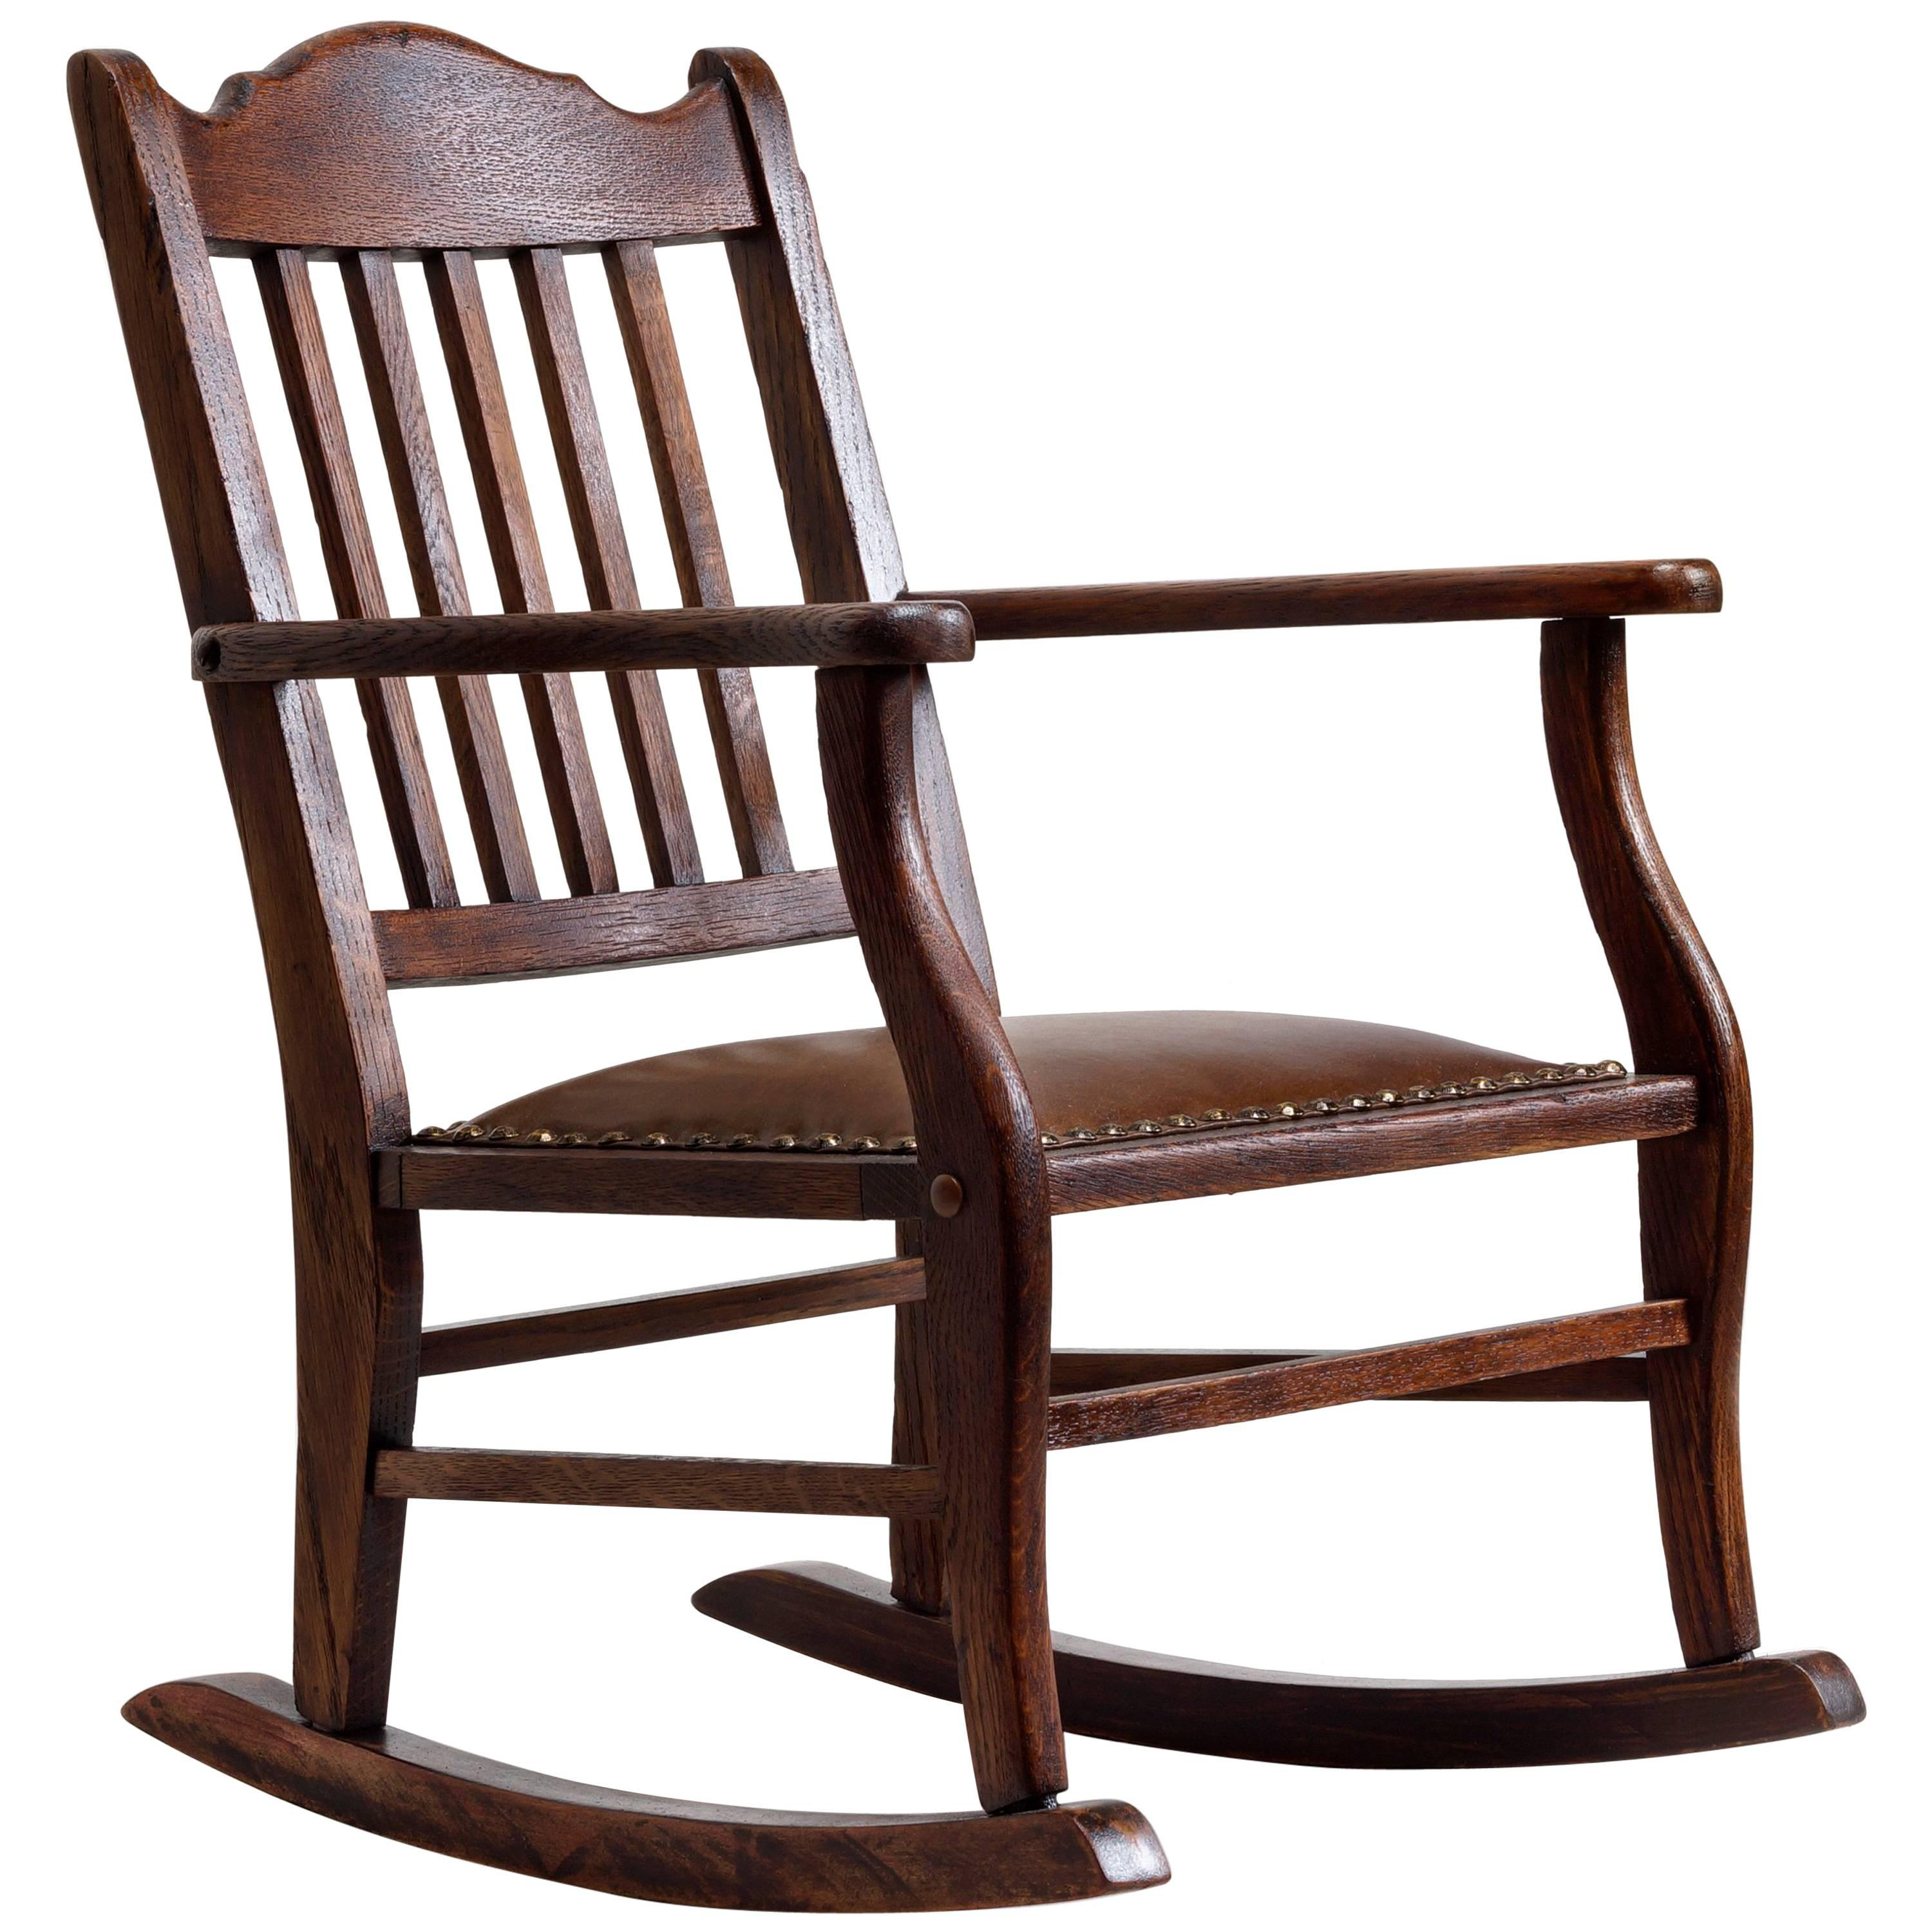 American Craftsman Childu0027s Rocking Chair